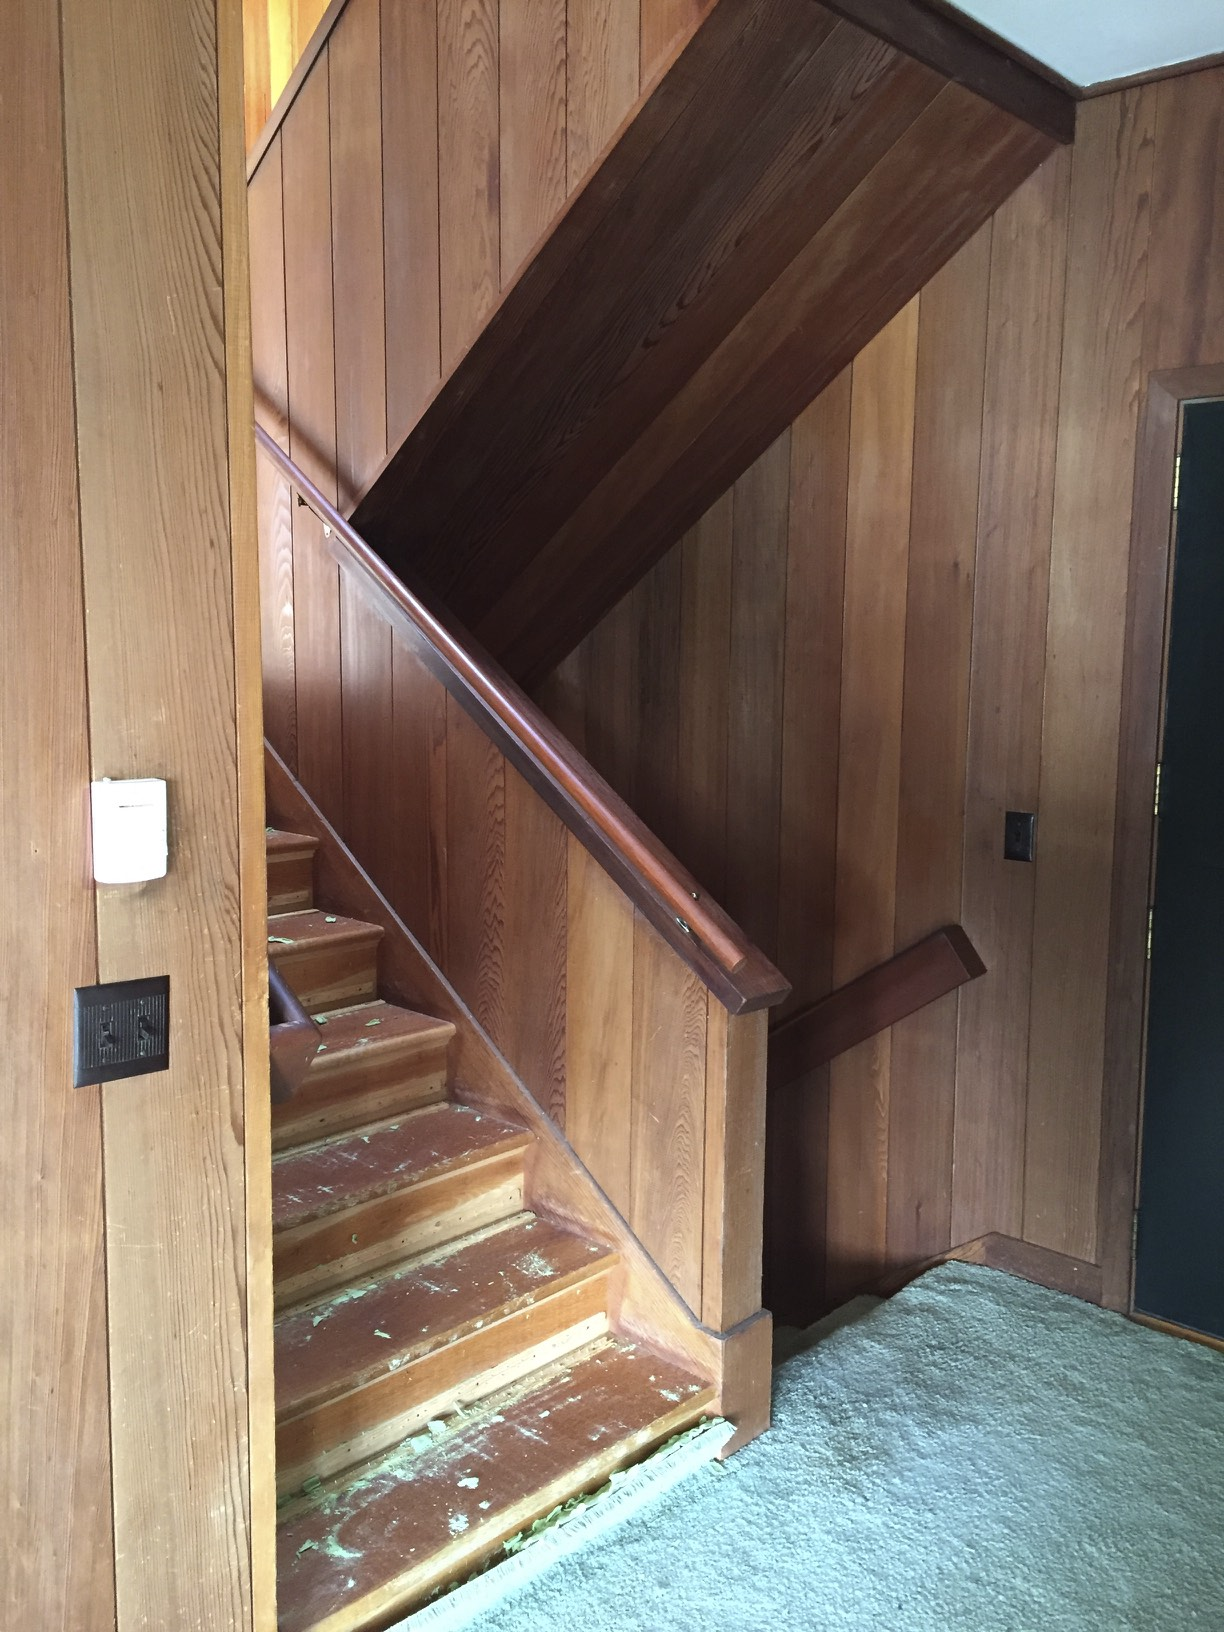 Even though the stairway before had original redwood paneling from 1954, it was tired looking. It was all enclosed and dark feeling.